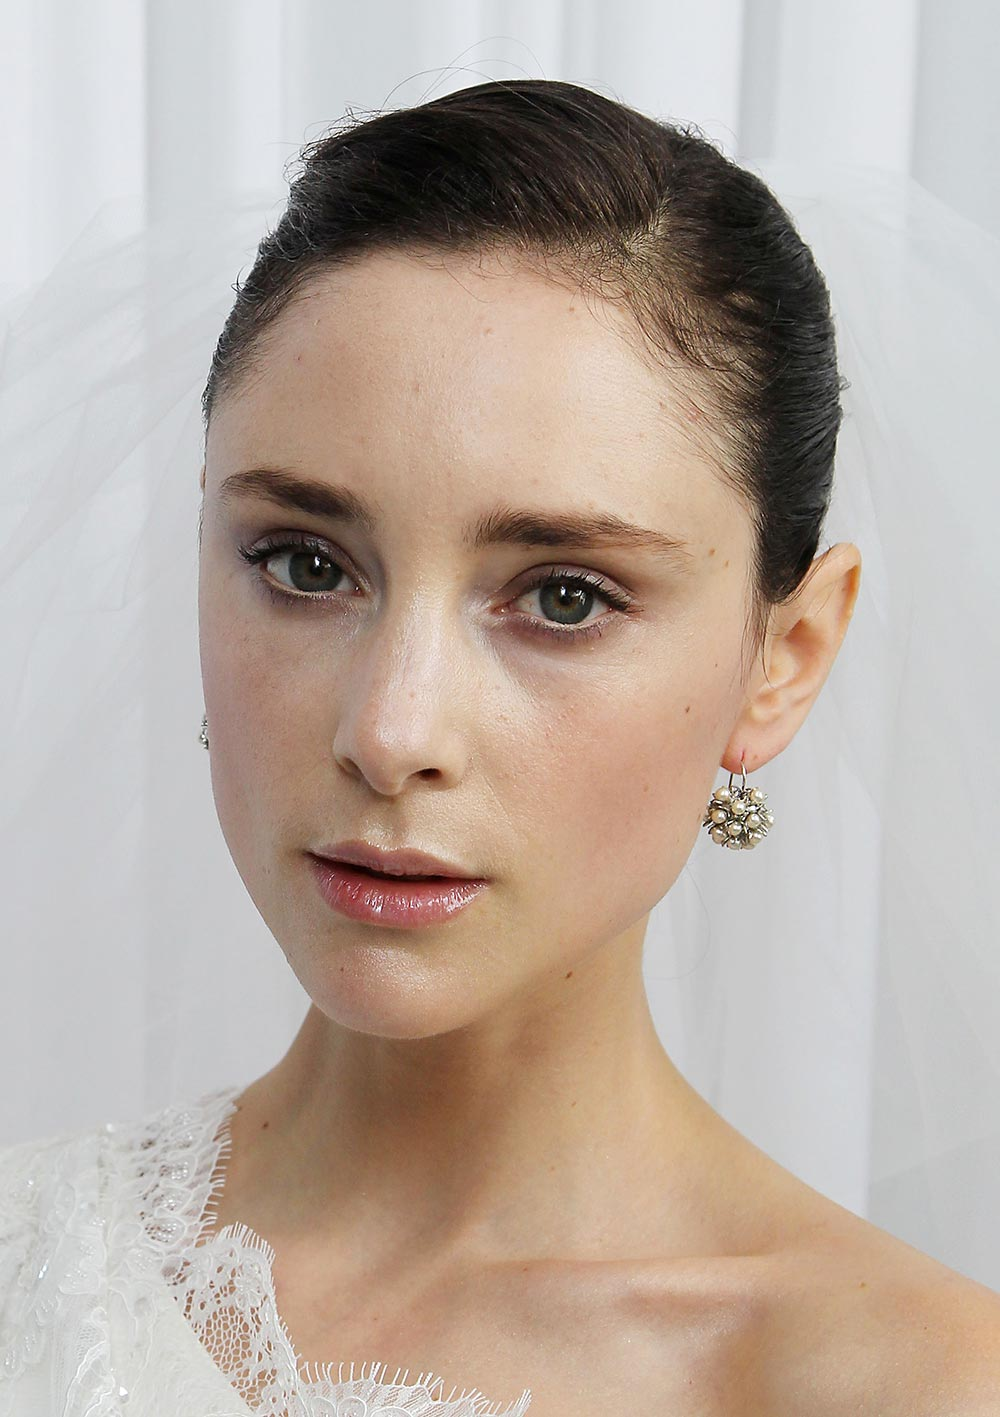 Marchesa Spring/Summer 2014 Bridal Makeup